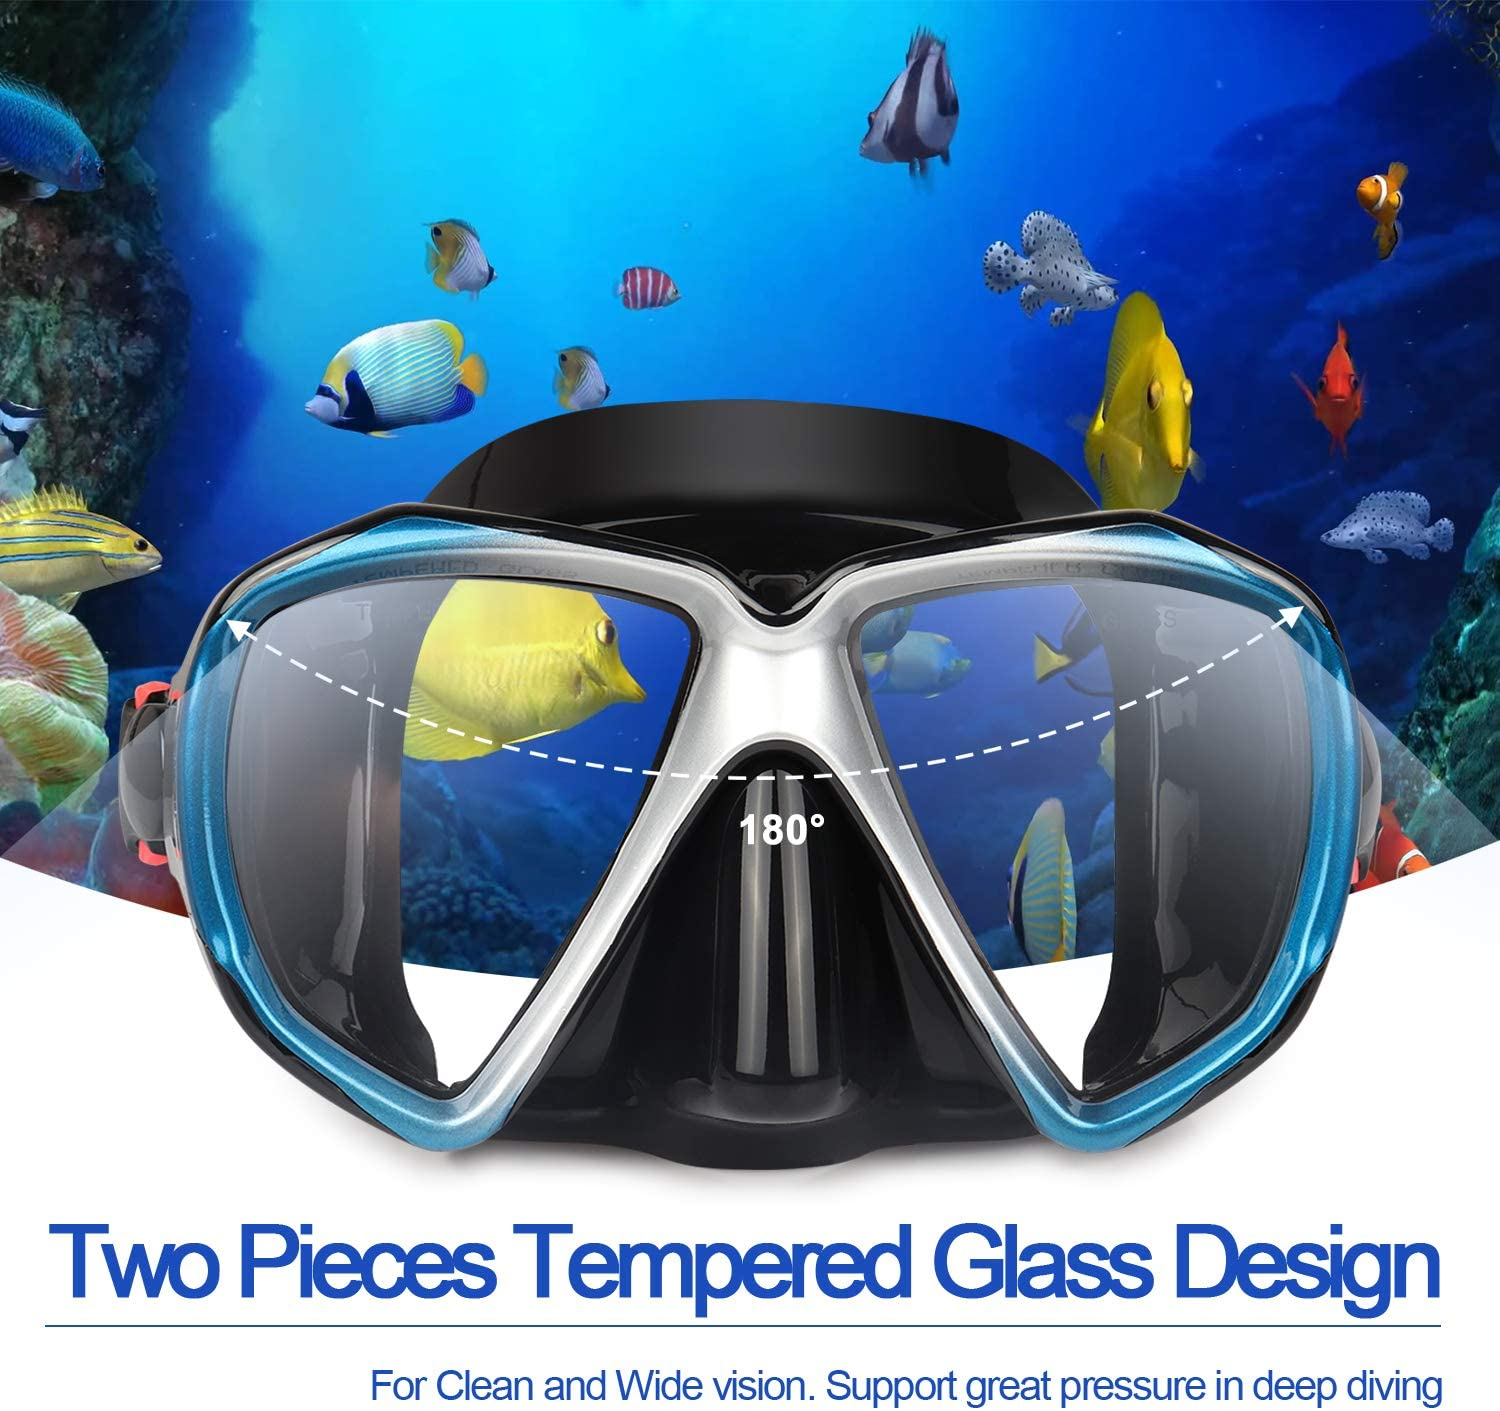 Tempered Anti-Fog Lens Glasses Snorkel Goggles Swimming EXP VISION Snorkel Diving Mask Set Scuba Dive Snorkel Mask with Silicone Skirt Strap for Dry Snorkeling Panoramic HD Scuba Swim Mask